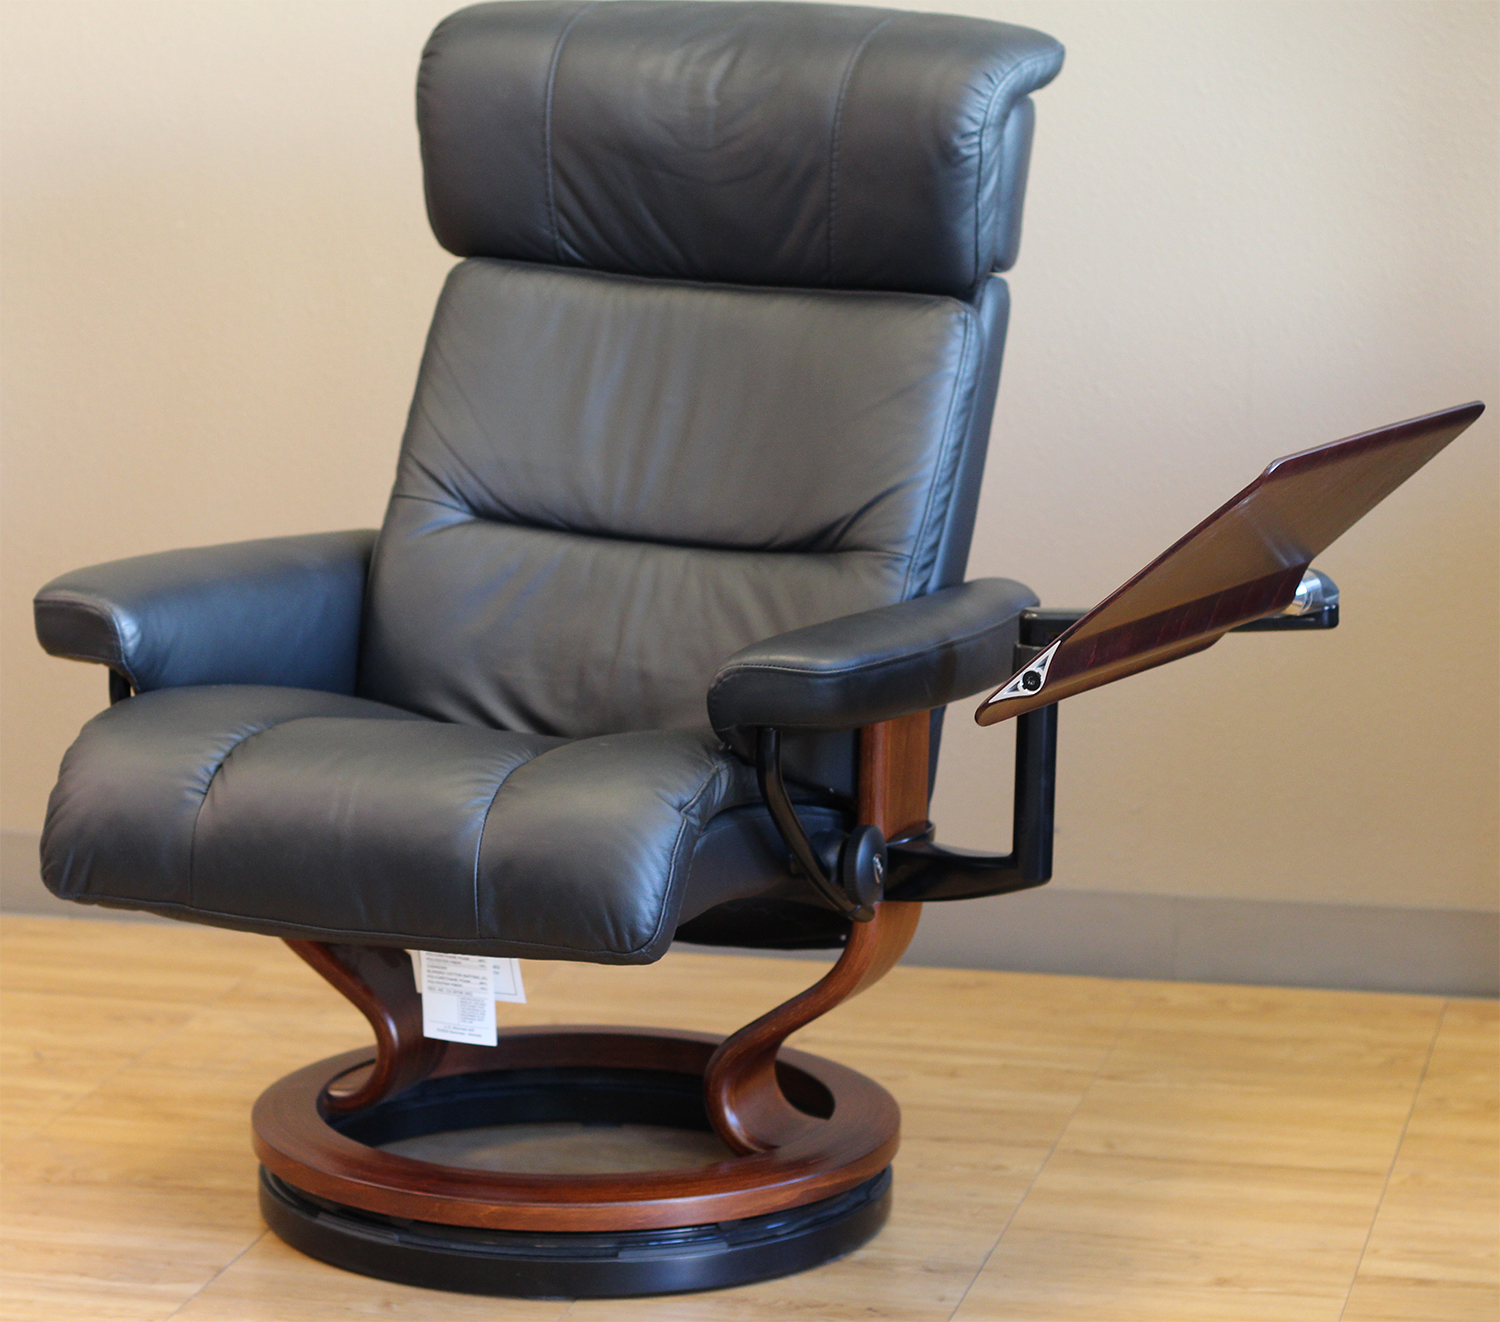 Stressless Recliner Personal Computer Laptop Table For Ekornes Chairs Ekornes Stressless